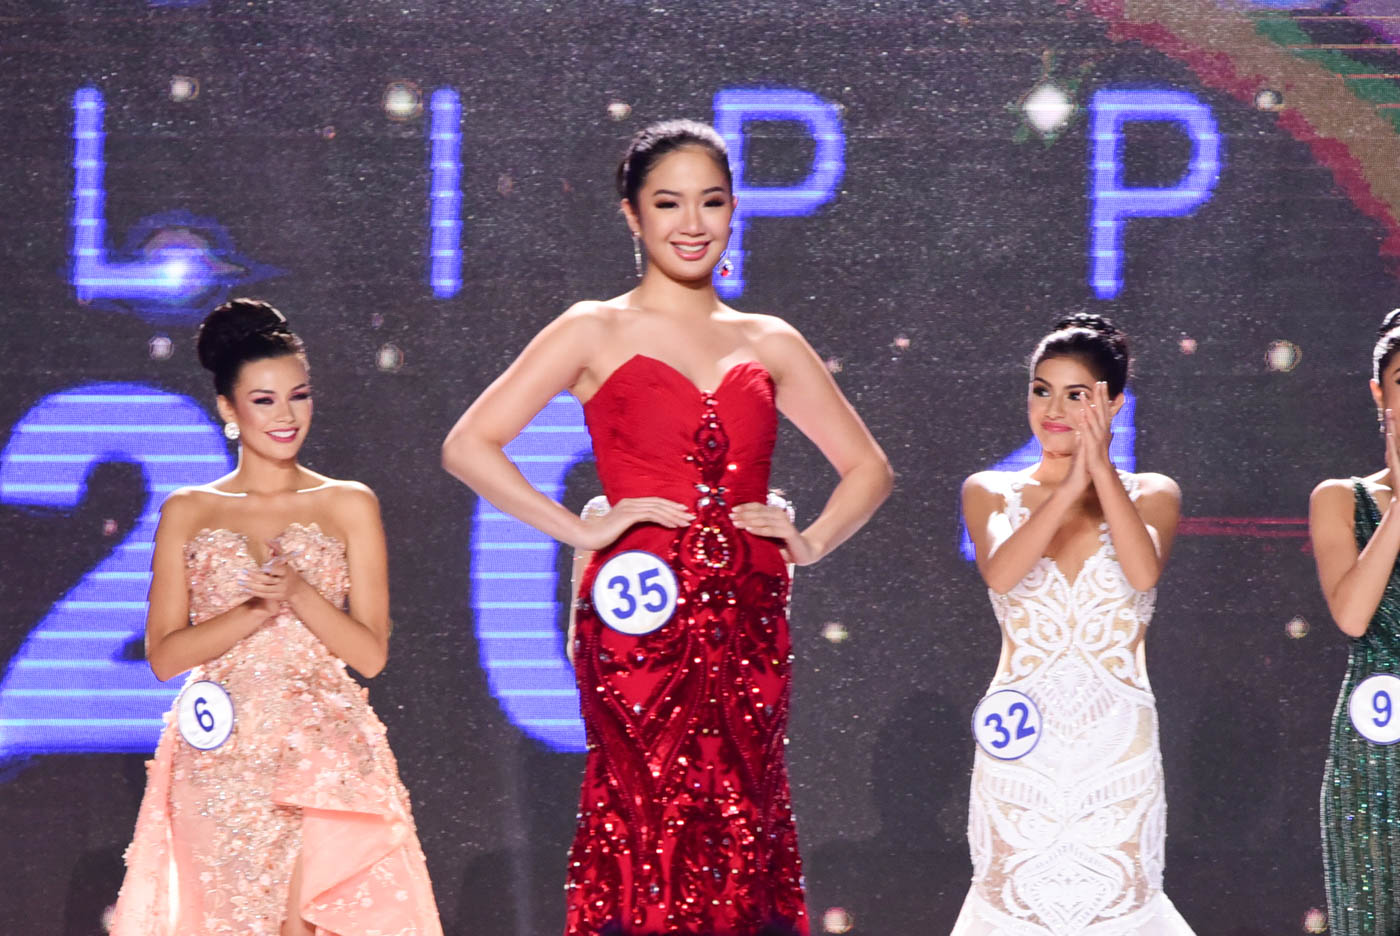 SURPRISE WINNER. Sophia Seronon wins a crown despite not having training and being shorter than the average beauty queen. Rappler photo